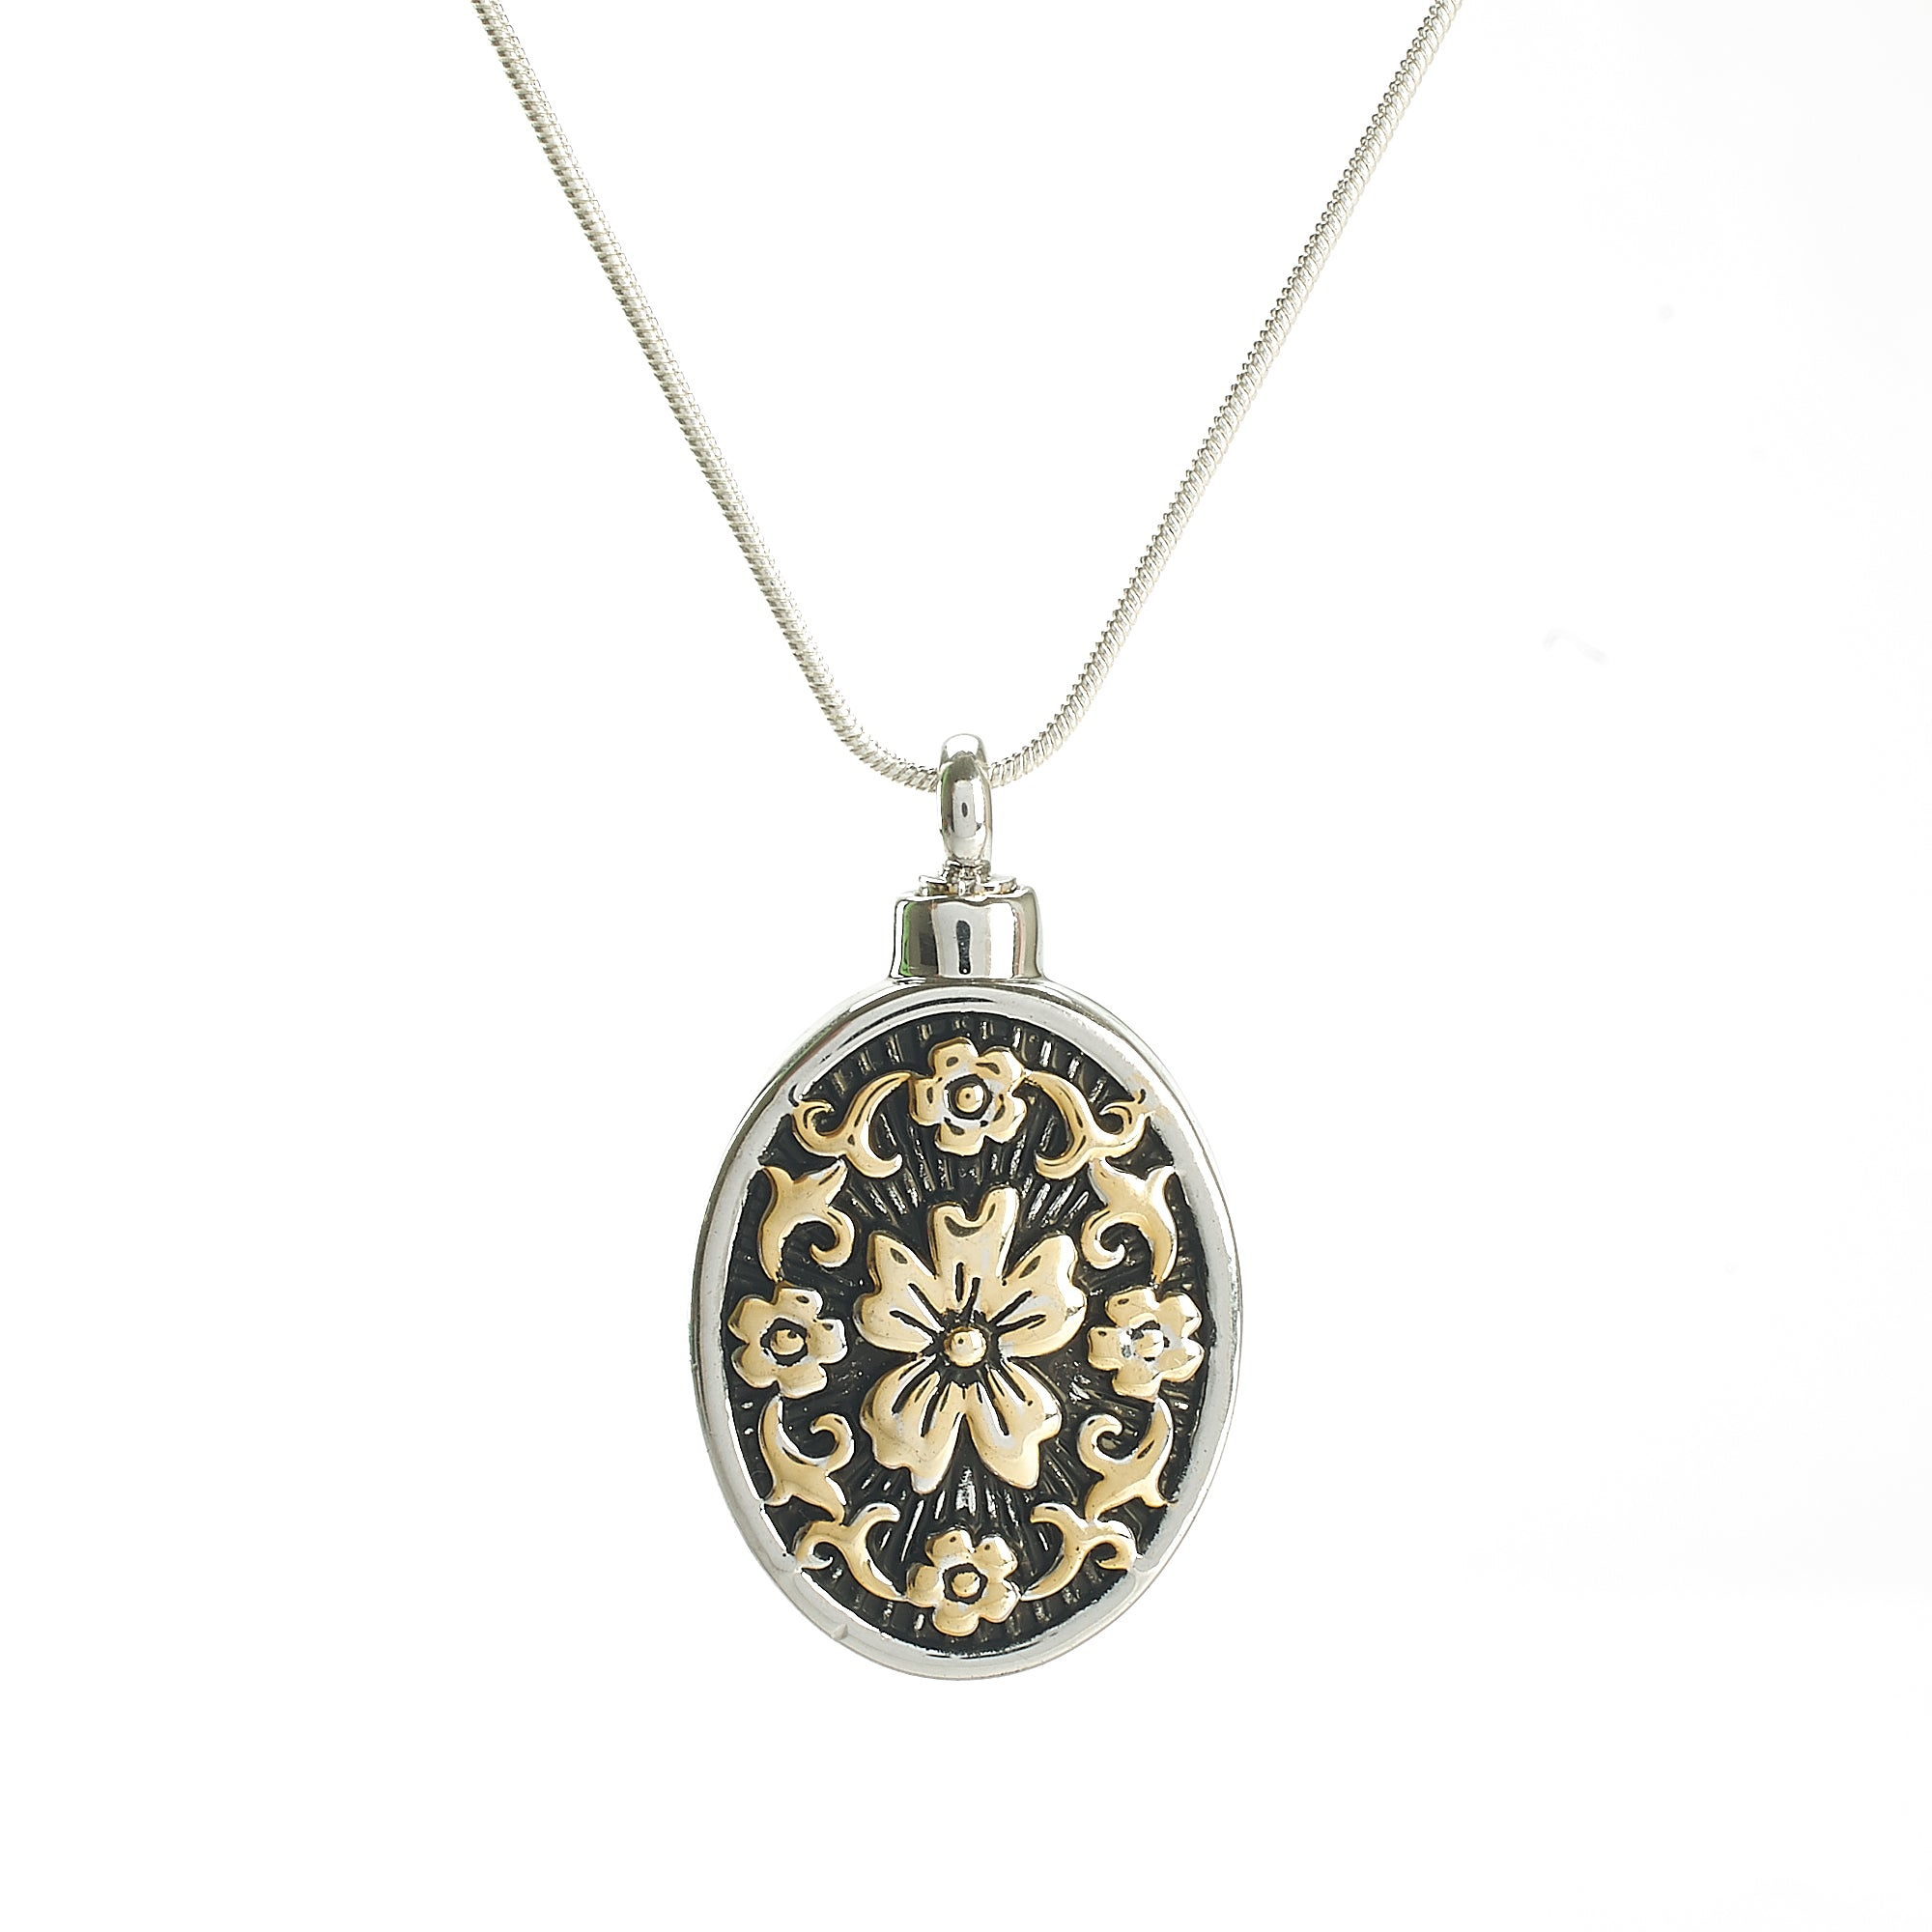 Cremation Pendant - Oval Decorative Piece Silver/Gold/Black